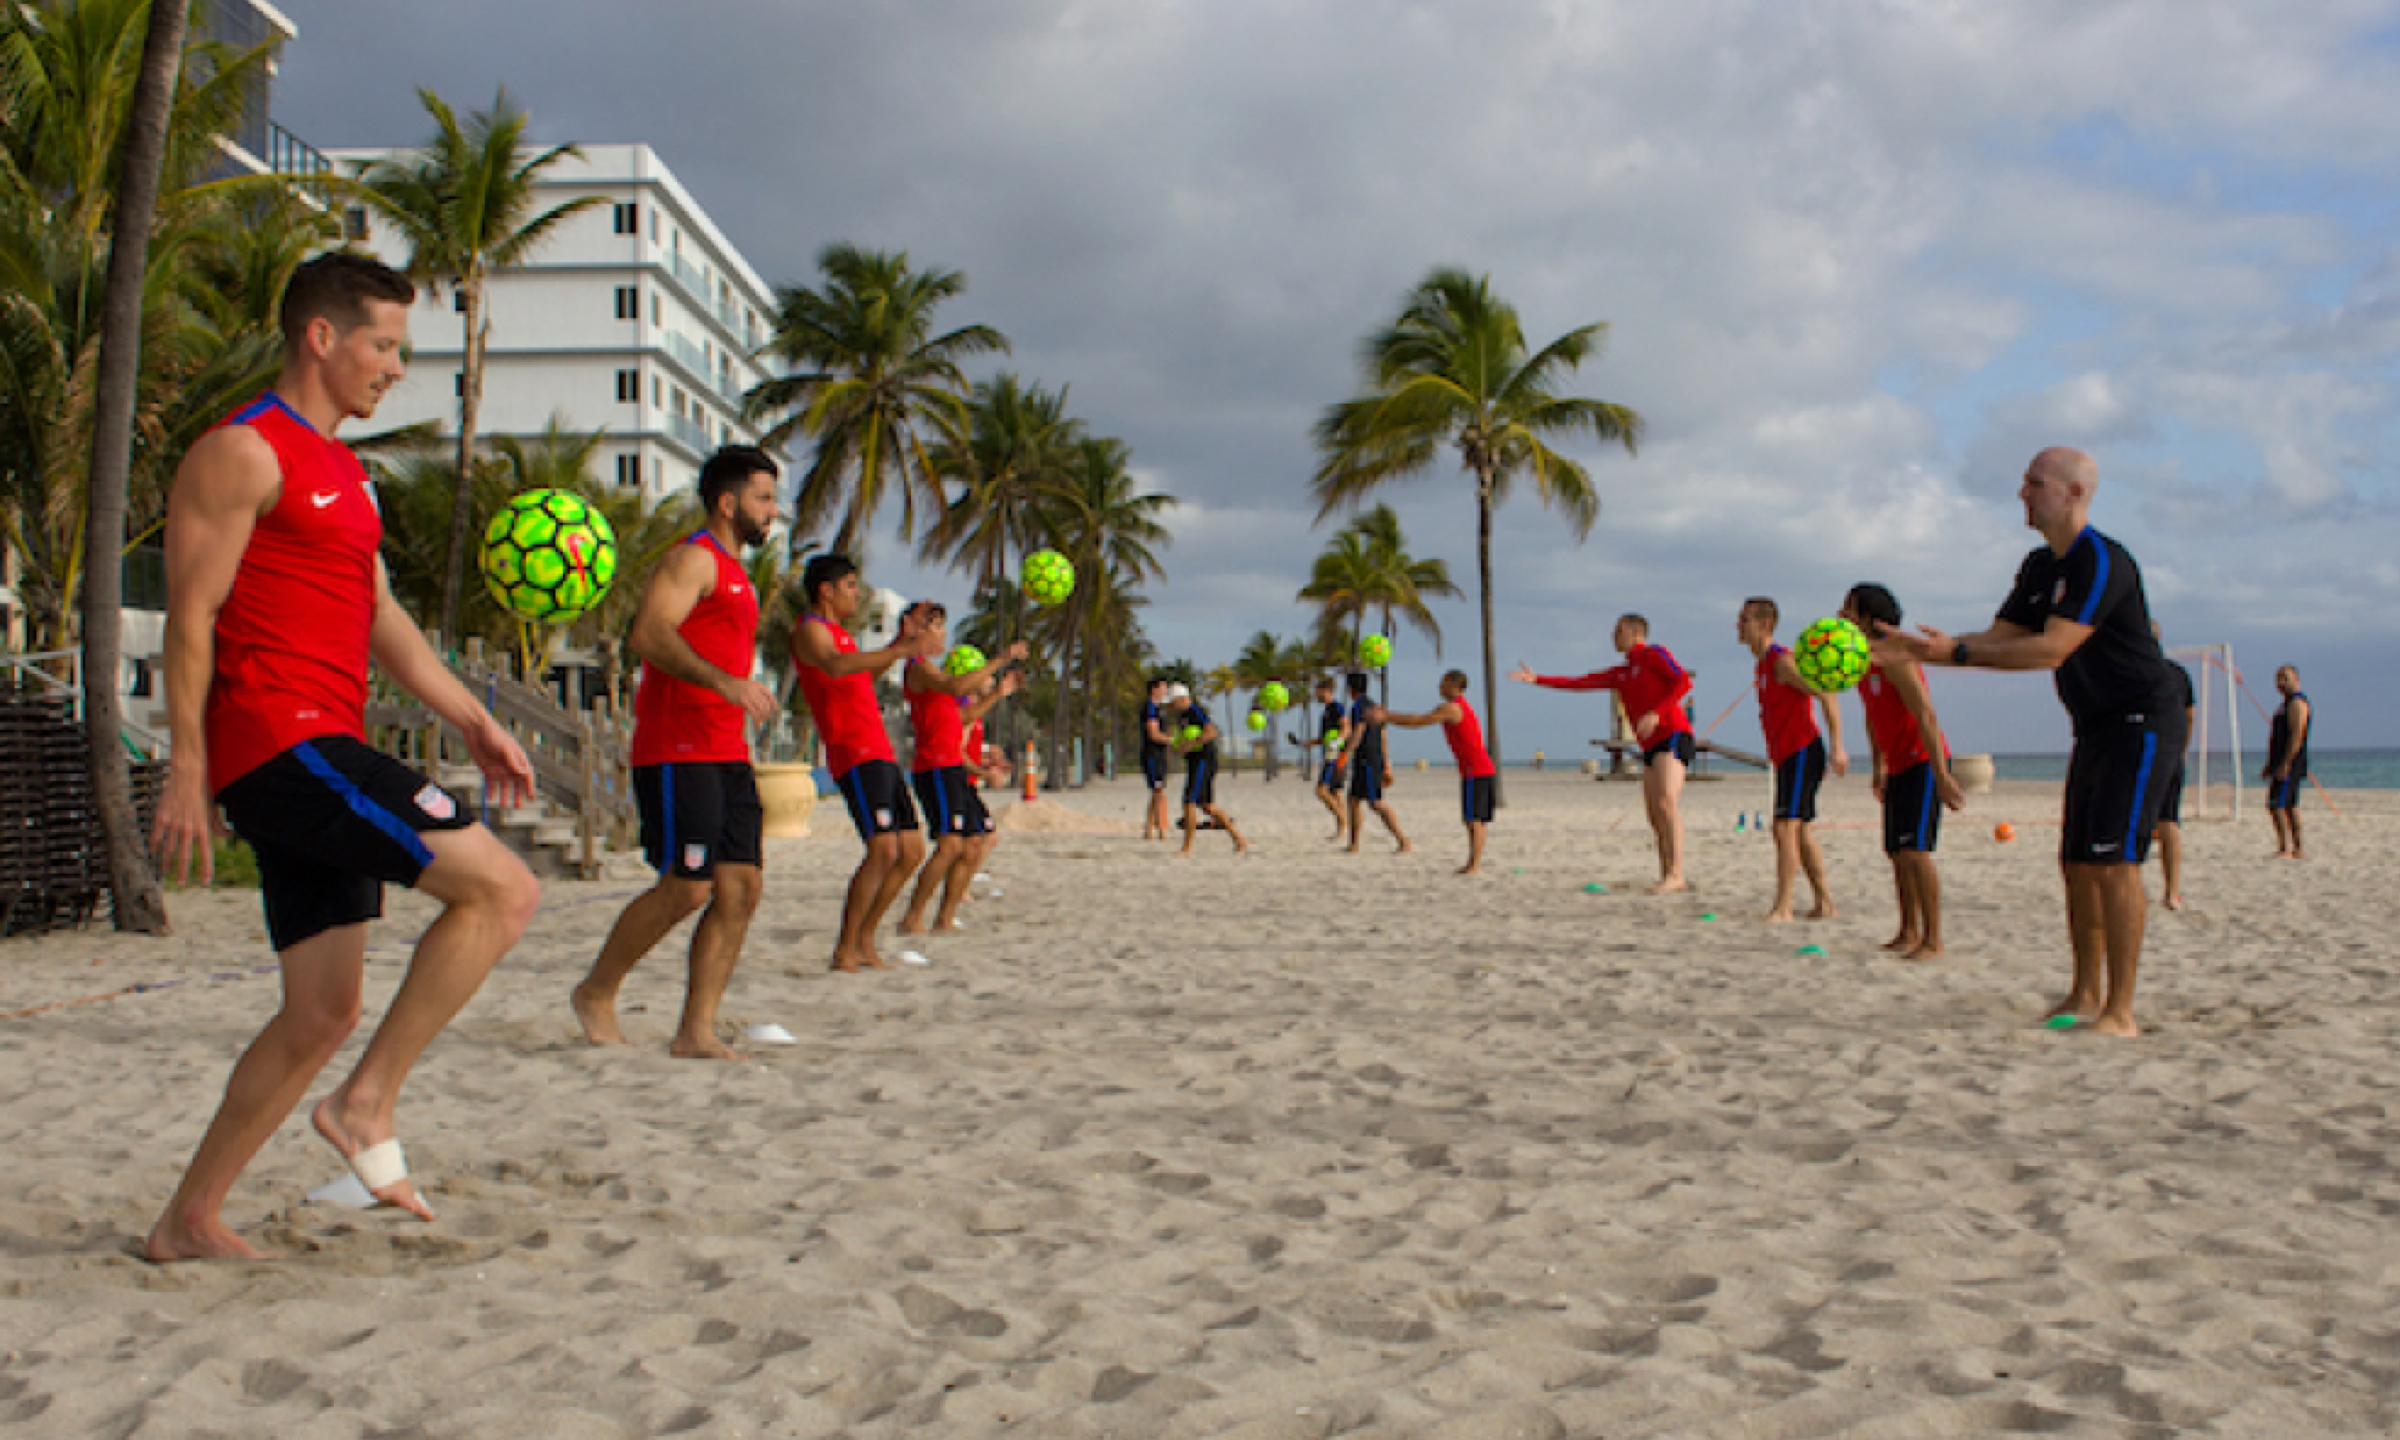 U.S. MEN'S BEACH SOCCER NATIONAL TEAM